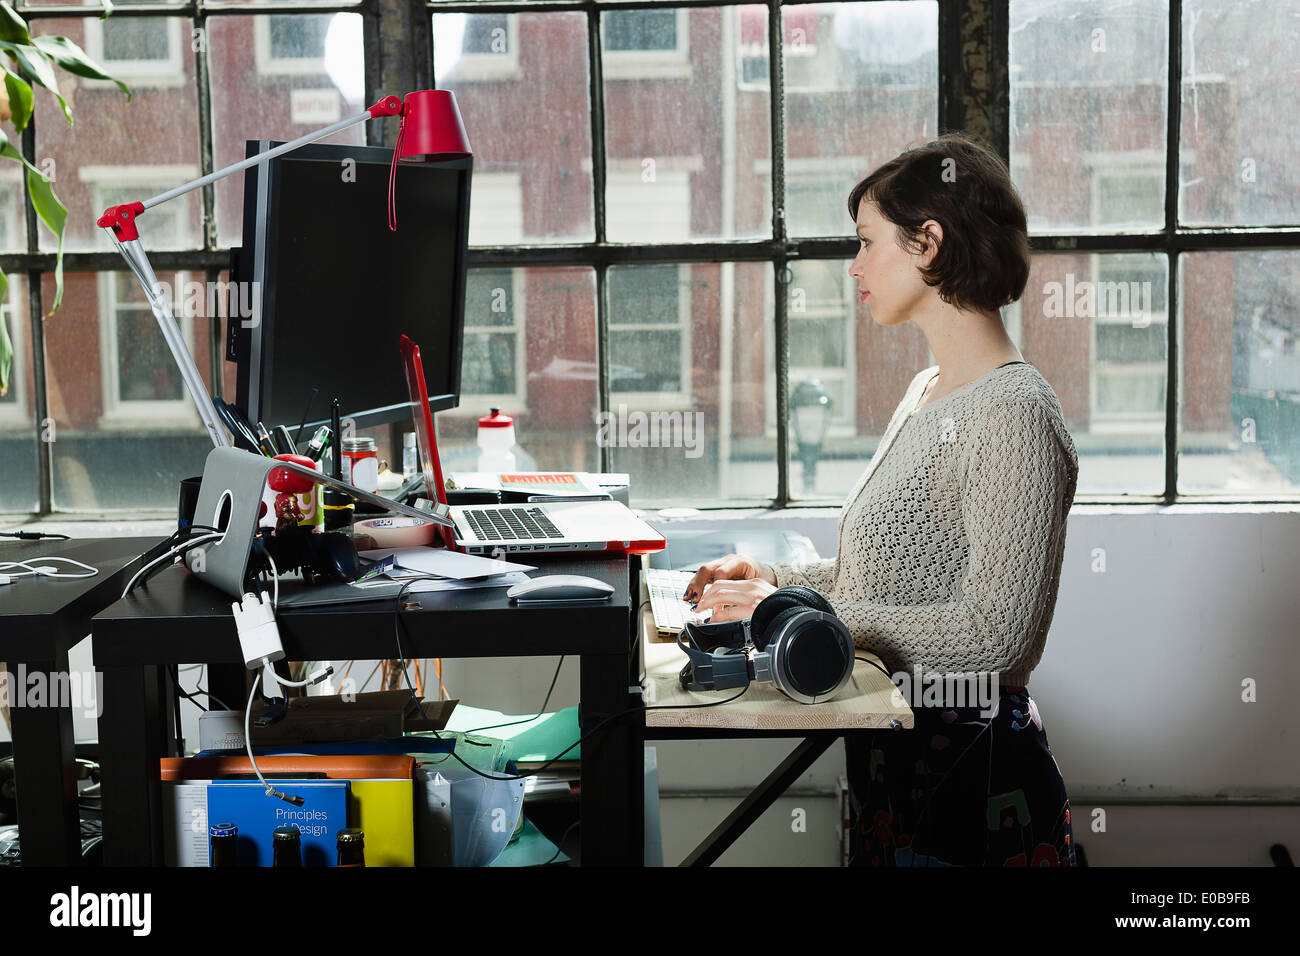 Young female designer using computer in design studio - Stock Image